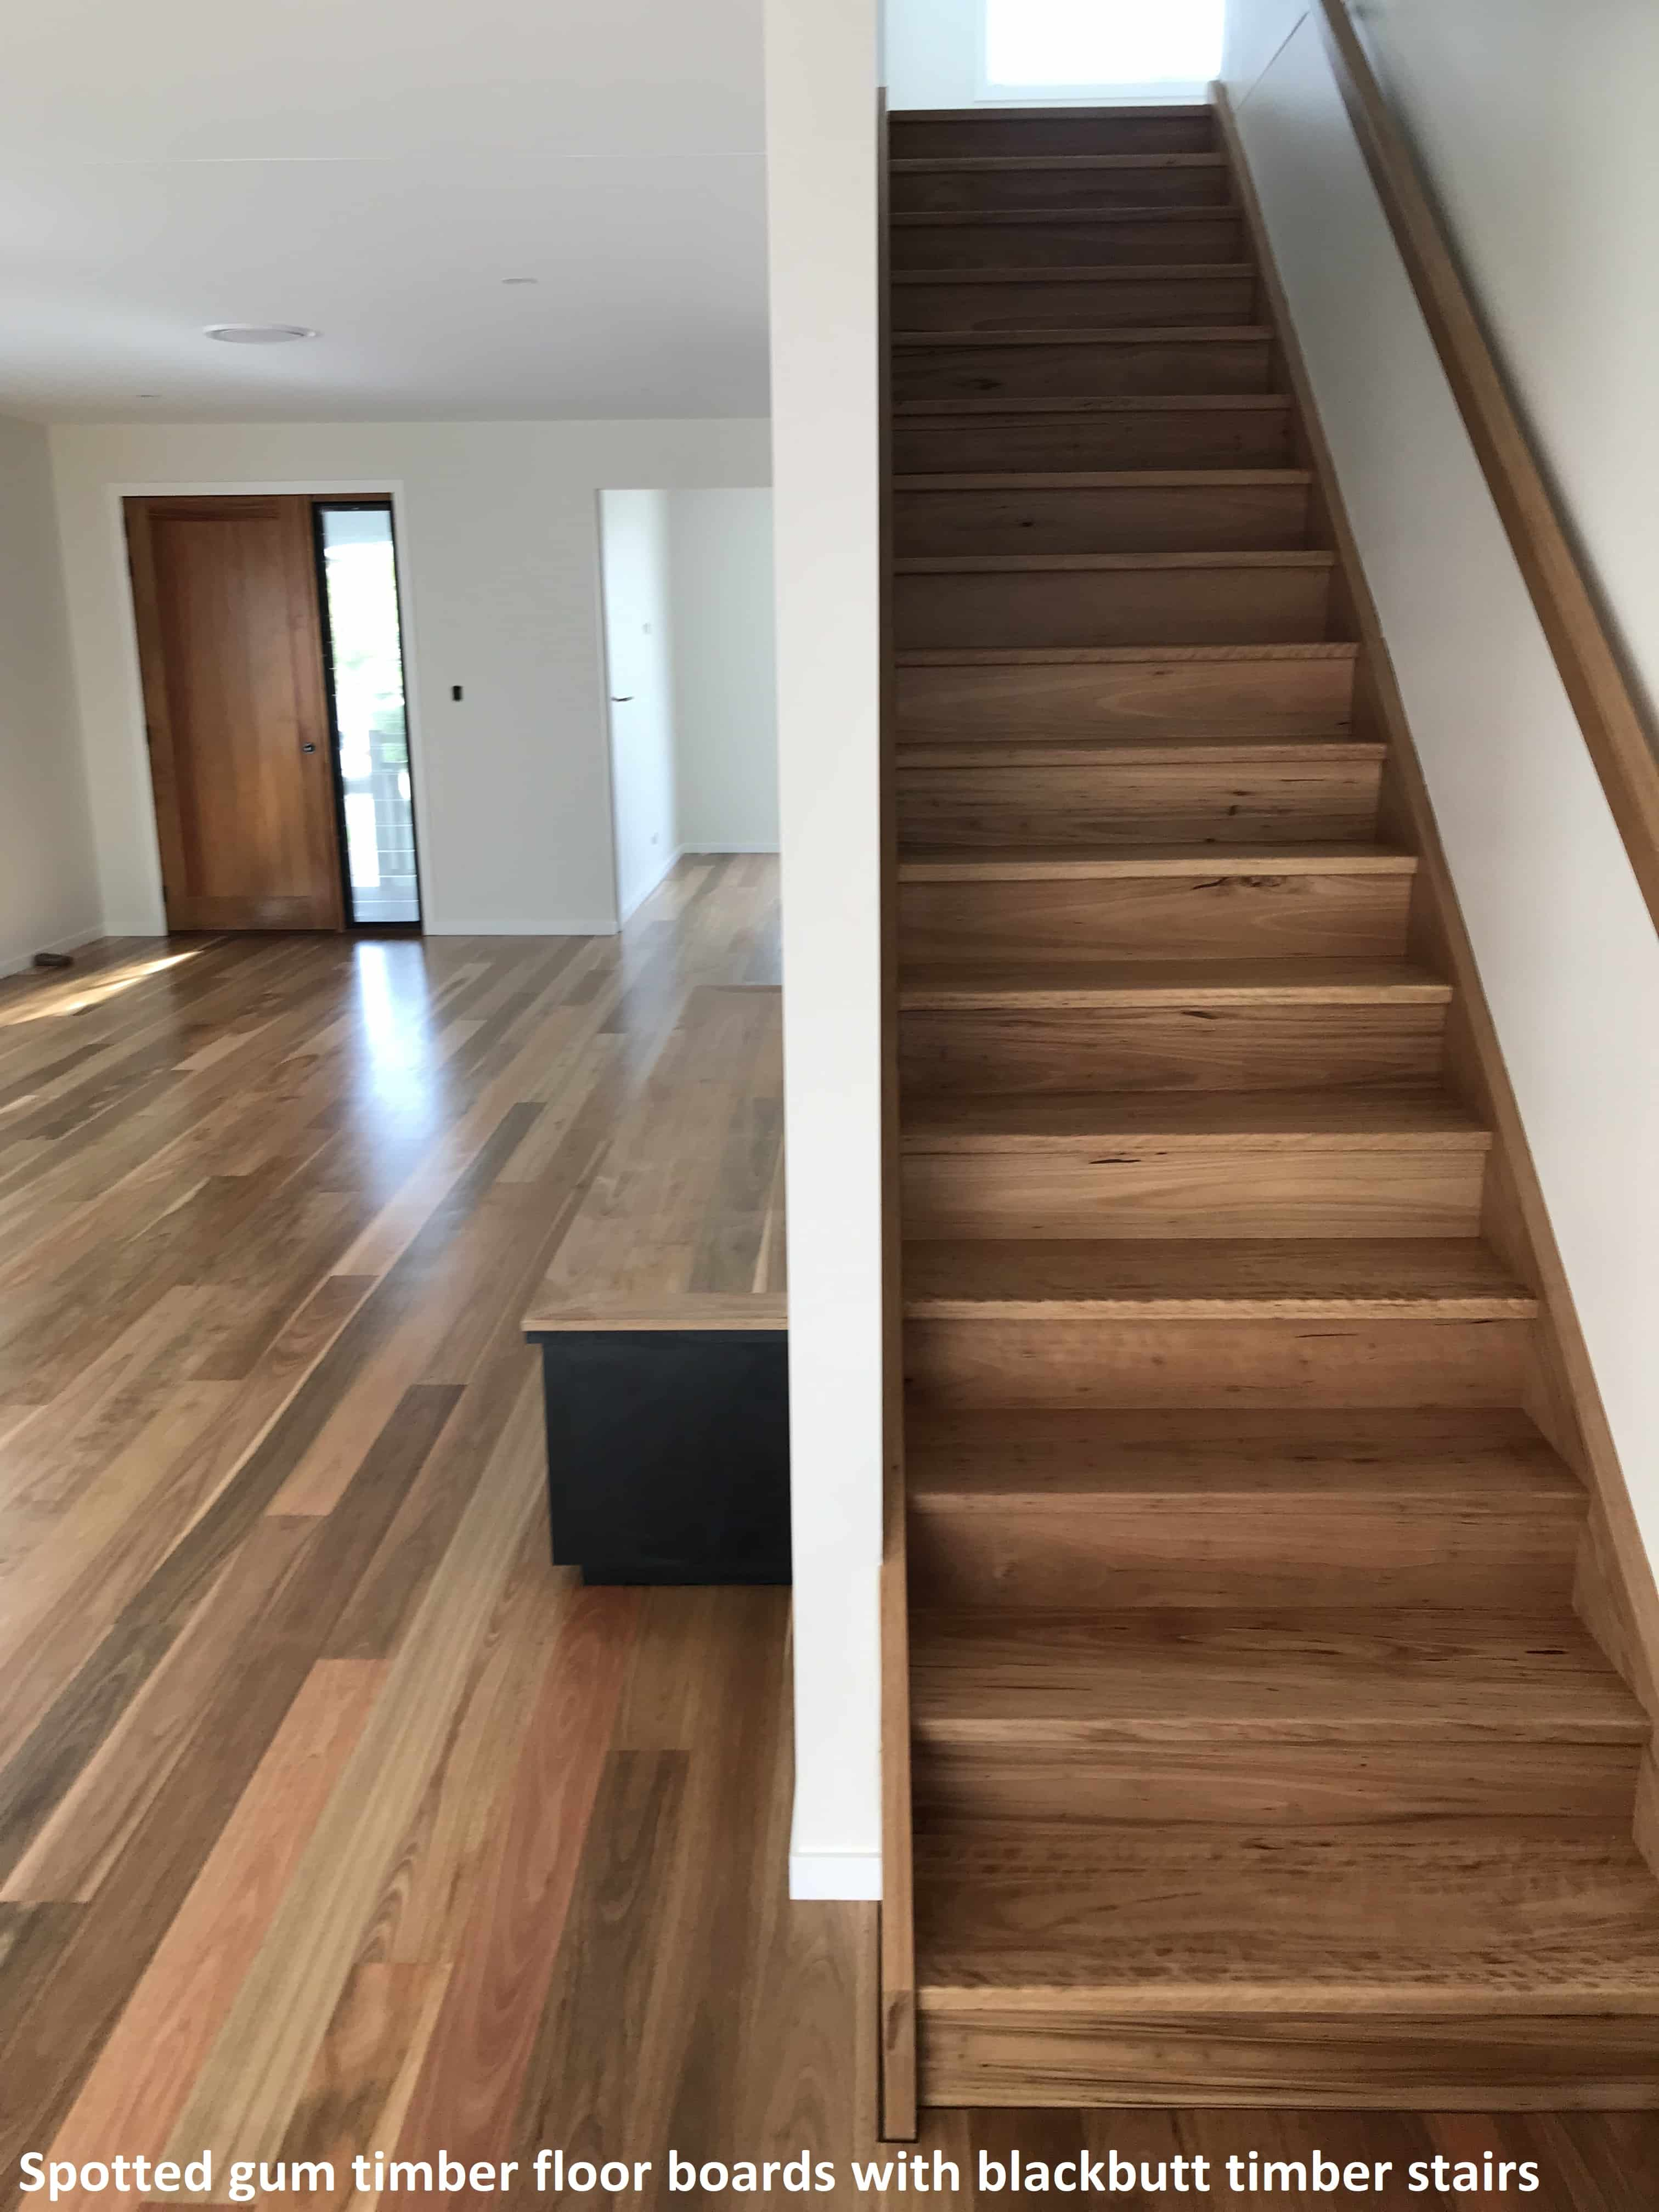 Spotted gum timber floor boards